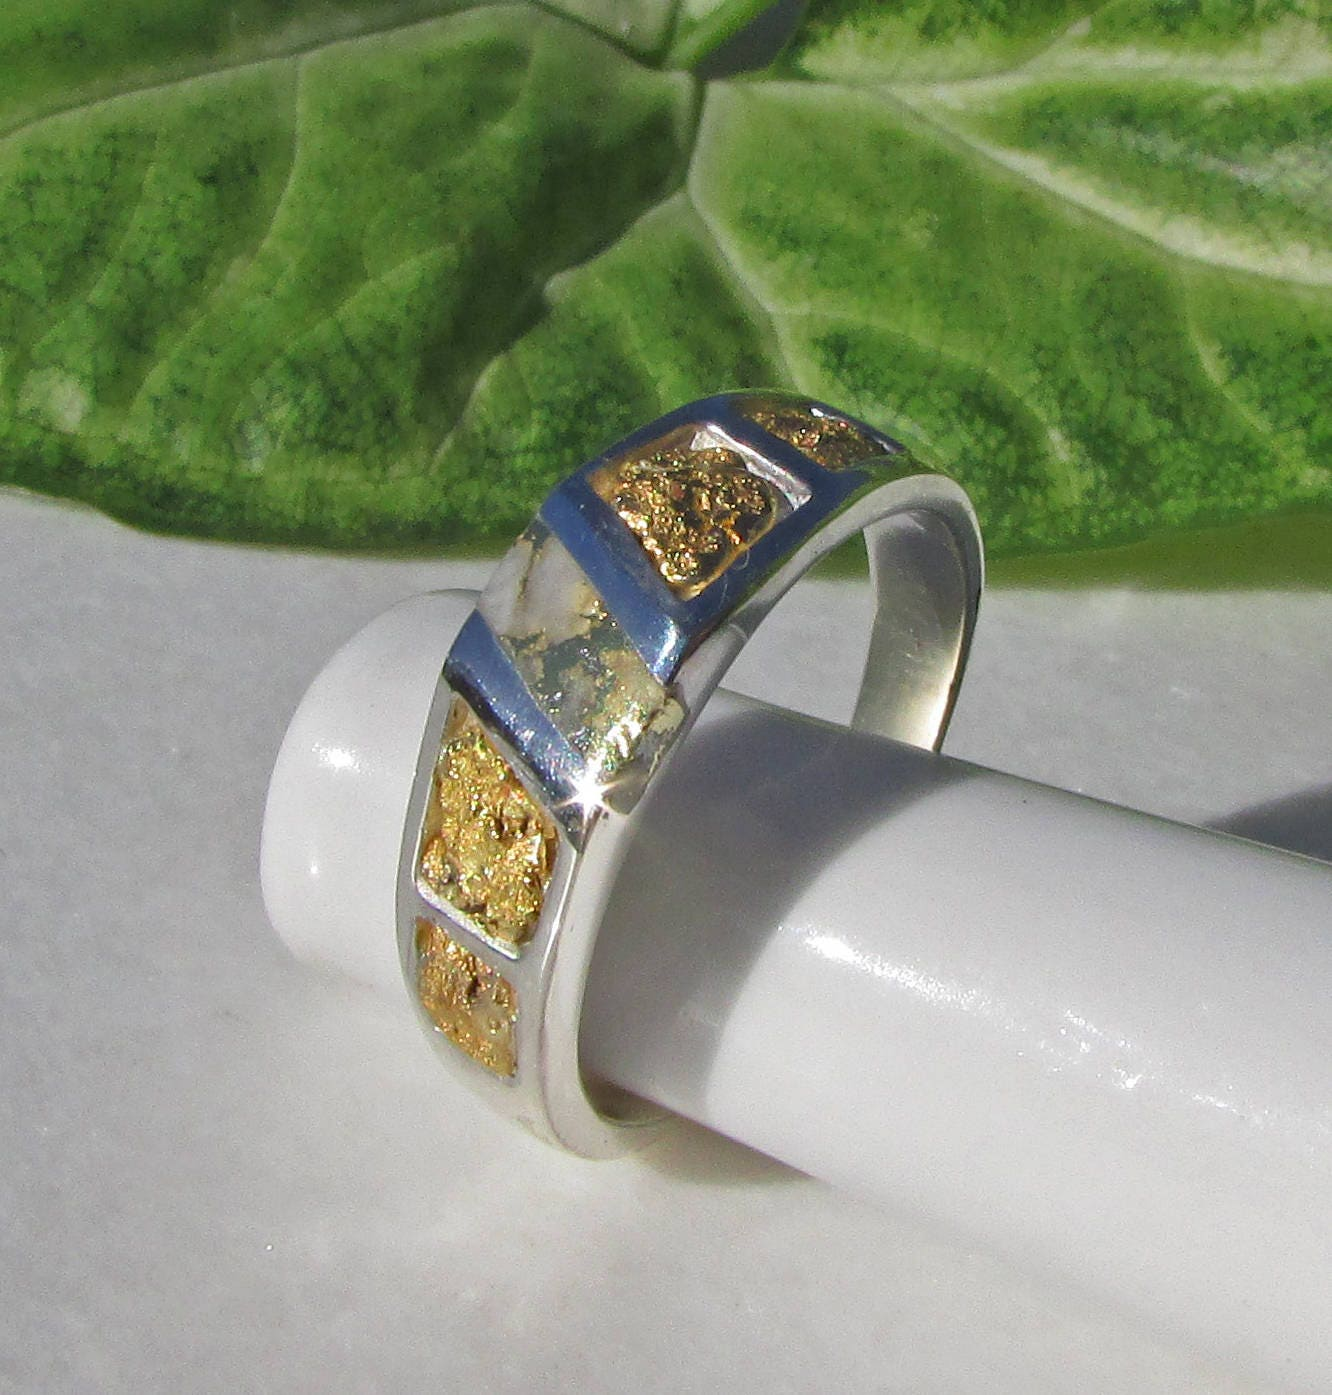 3721736c3fb63 Gold Nugget Men's Ring, Gold Veined Quartz, Rustic Gold Nugget Ring,  Natural Gold Bearing Quartz, Available in Sterling Silver or 14k Gold